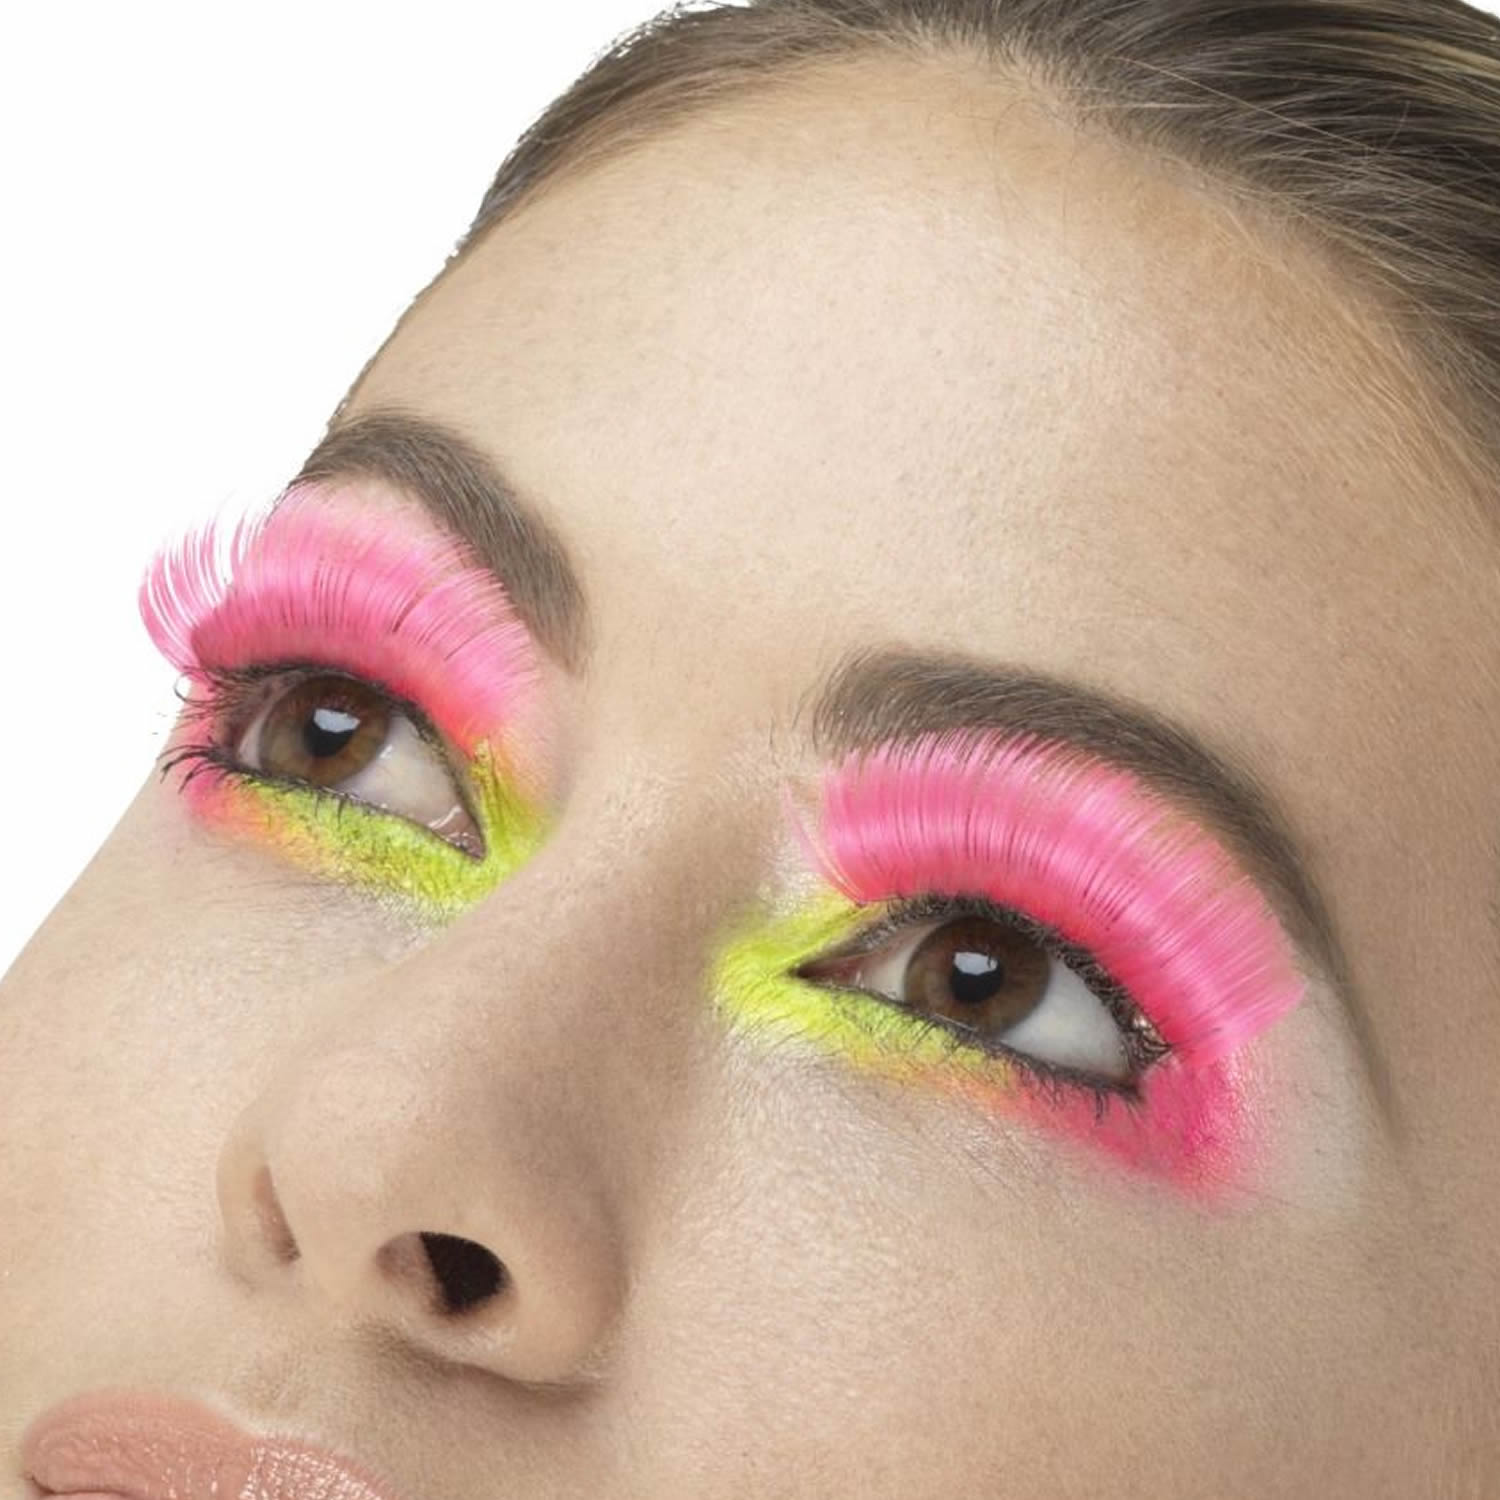 Fever False Eyelashes - 80s Party Neon Pink - Red Carpet FX - Professional Makeup